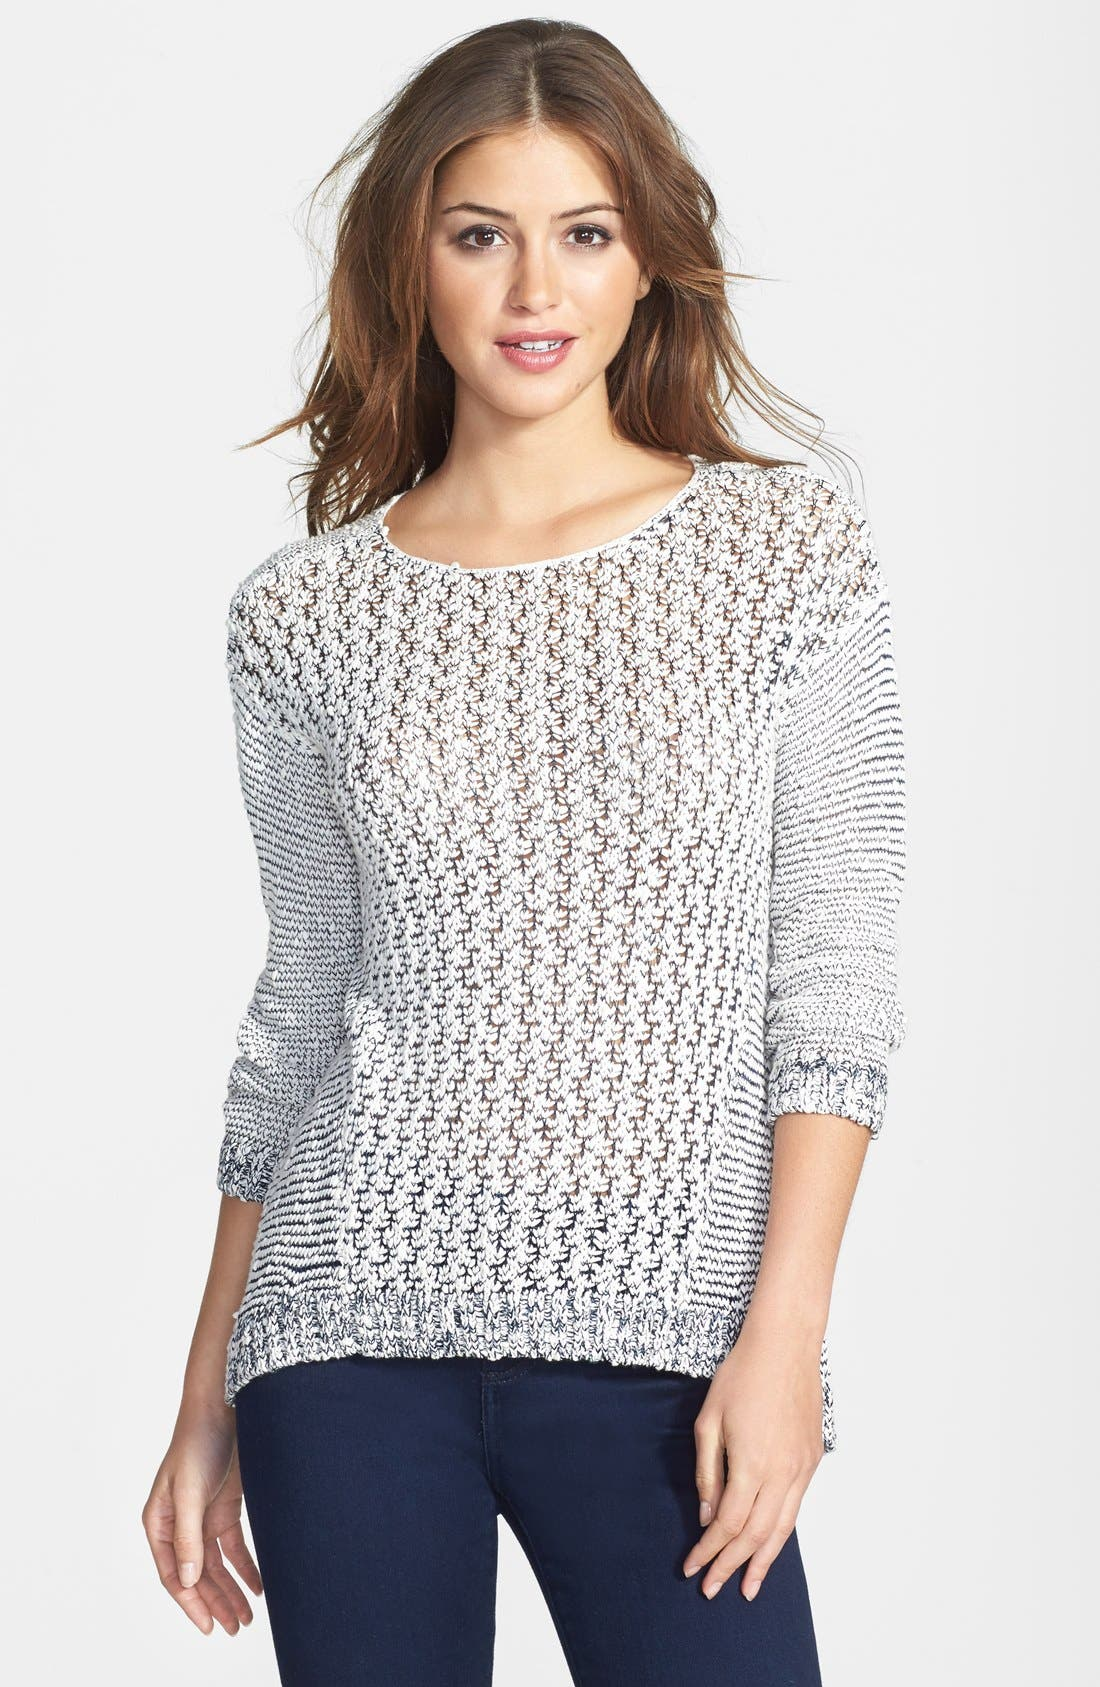 Main Image - Two by Vince Camuto Slub Cotton Blend Tape Yarn Sweater